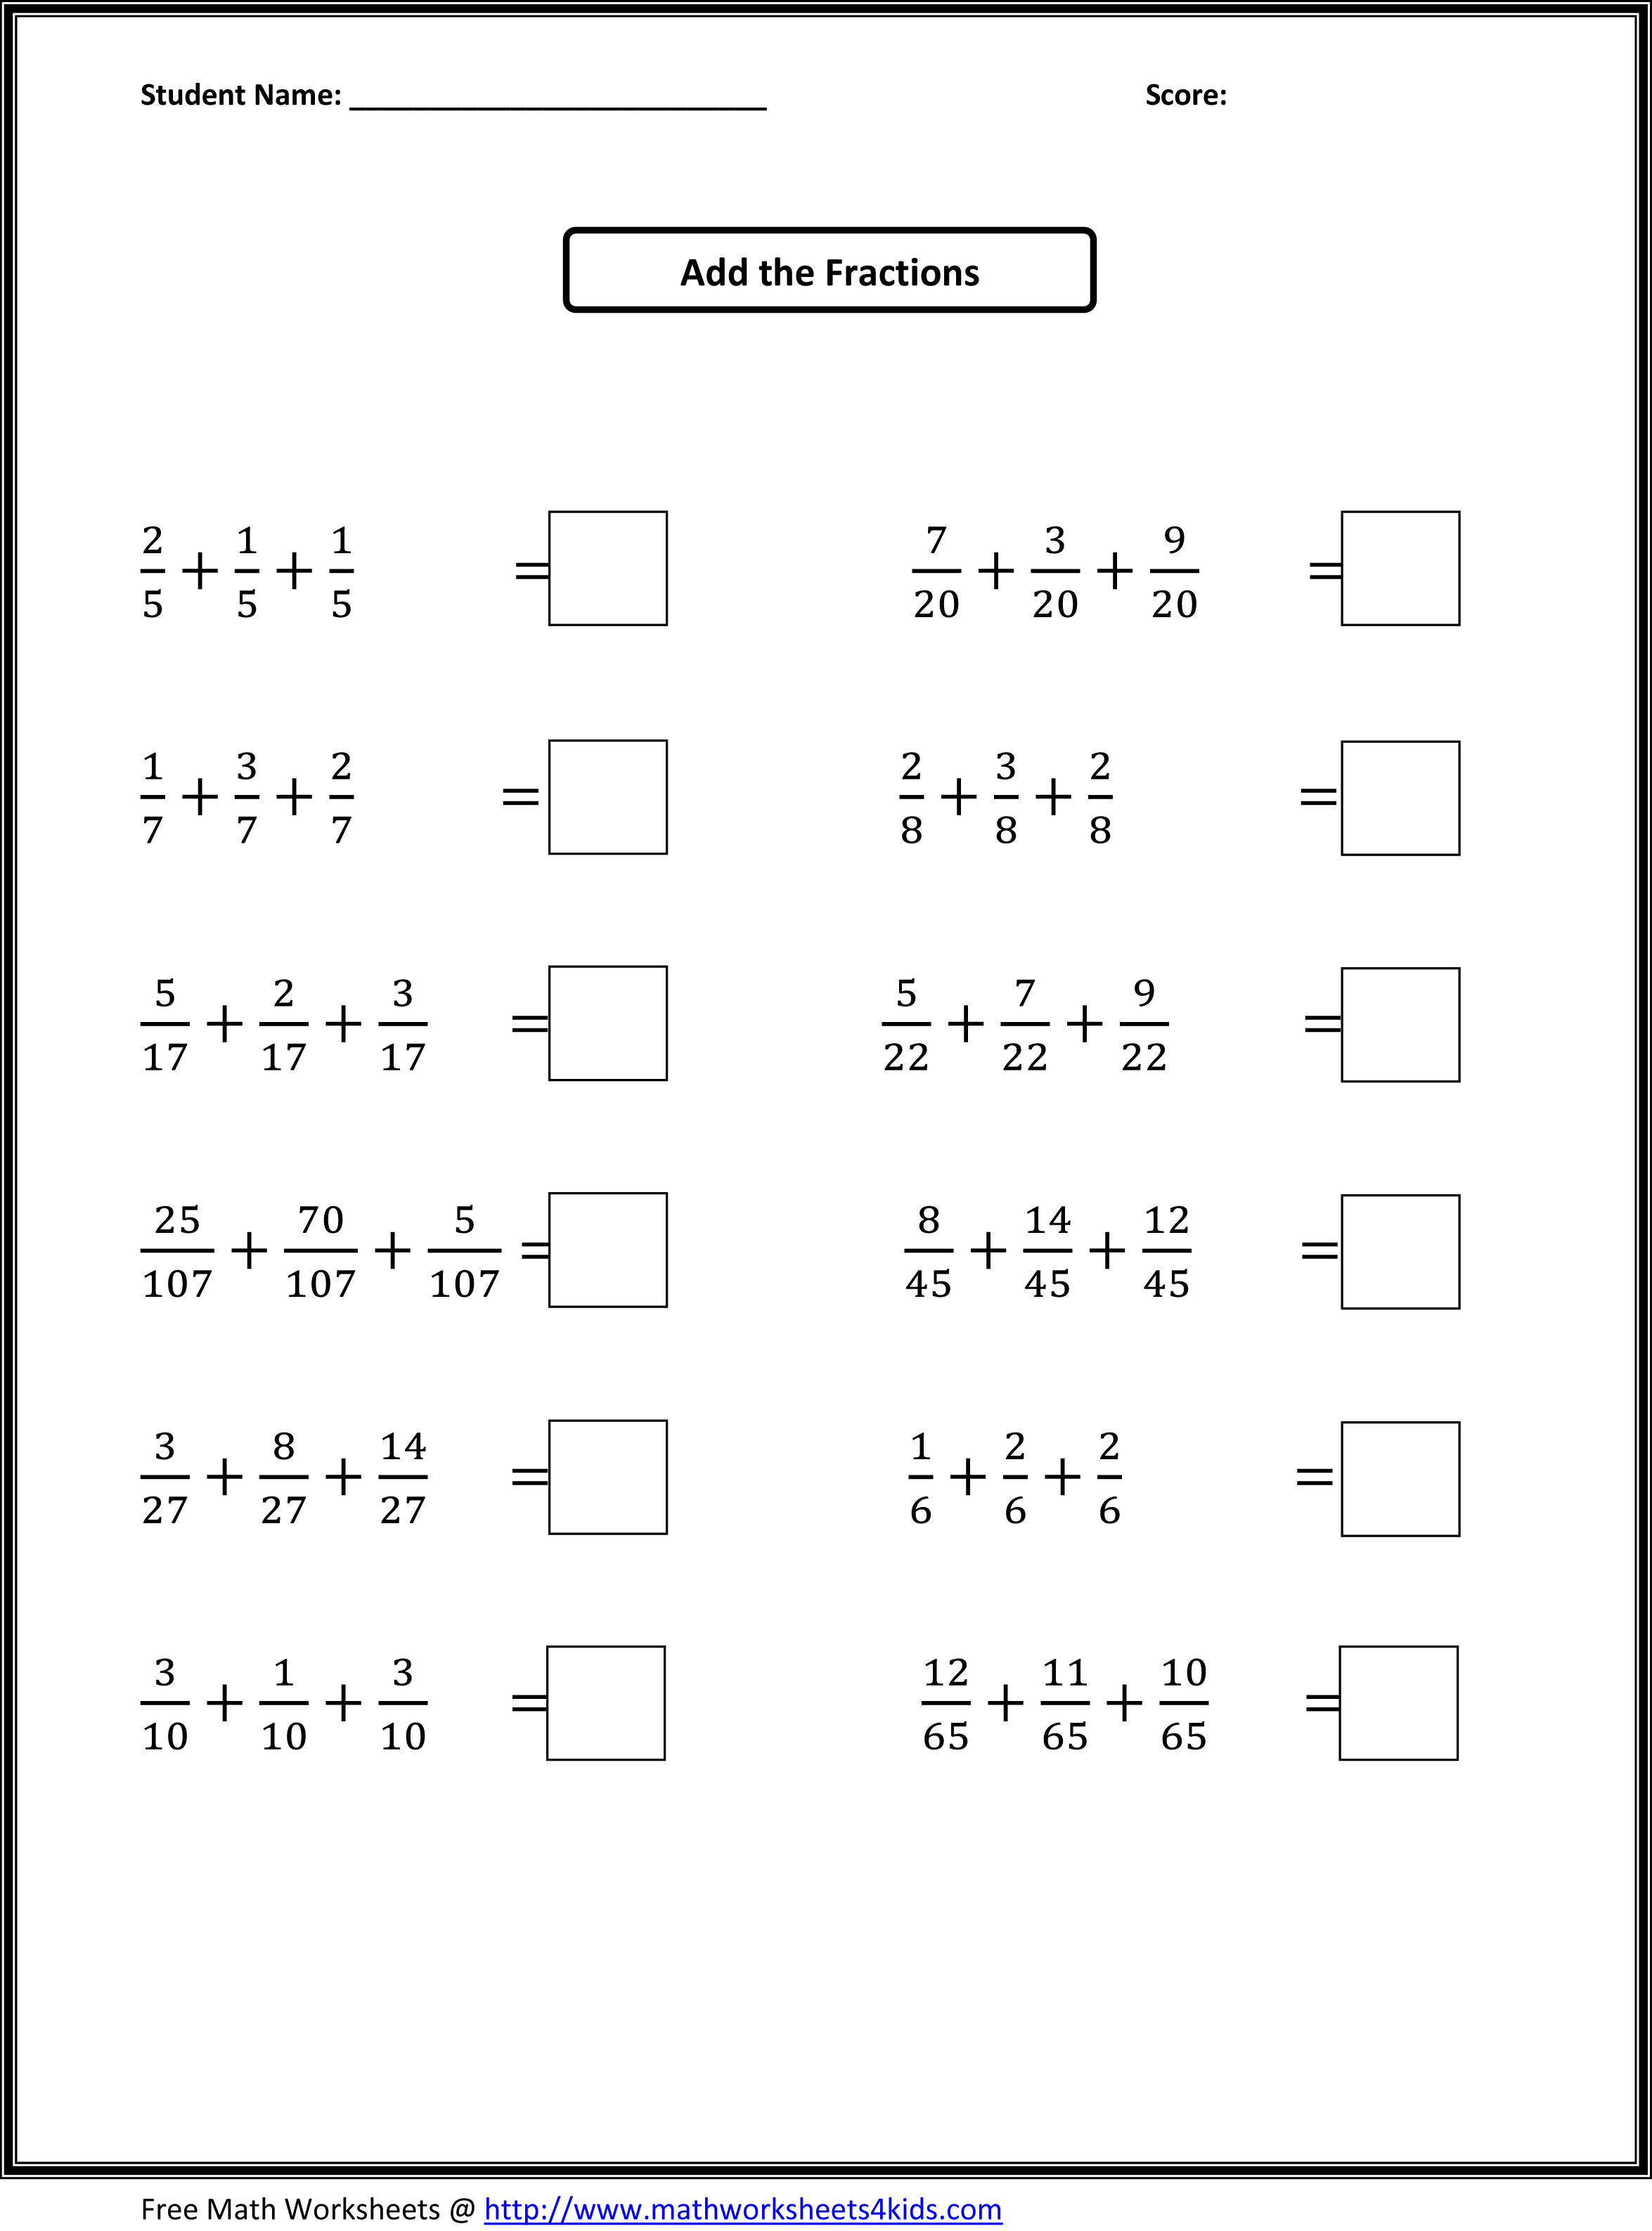 Worksheet Fourth Grade Math Worksheets Pdf 4th grade math worksheets multiplying fractions kids activities addition of worksheets